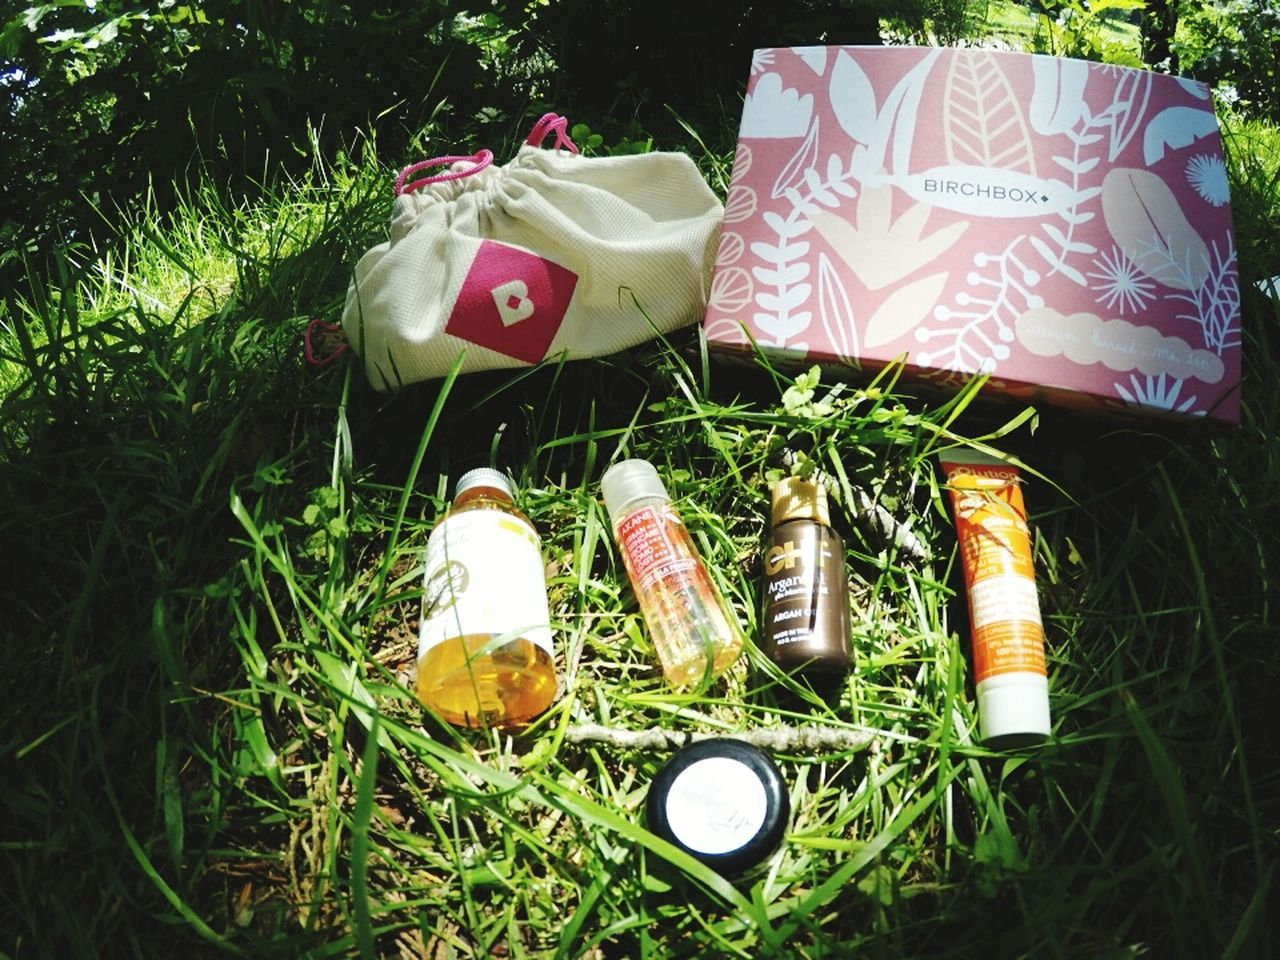 Birchbox Naturelovers Beauty Goprohero4 Youtubers Beautyful  The Fashionist - 2015 EyeEm Awards